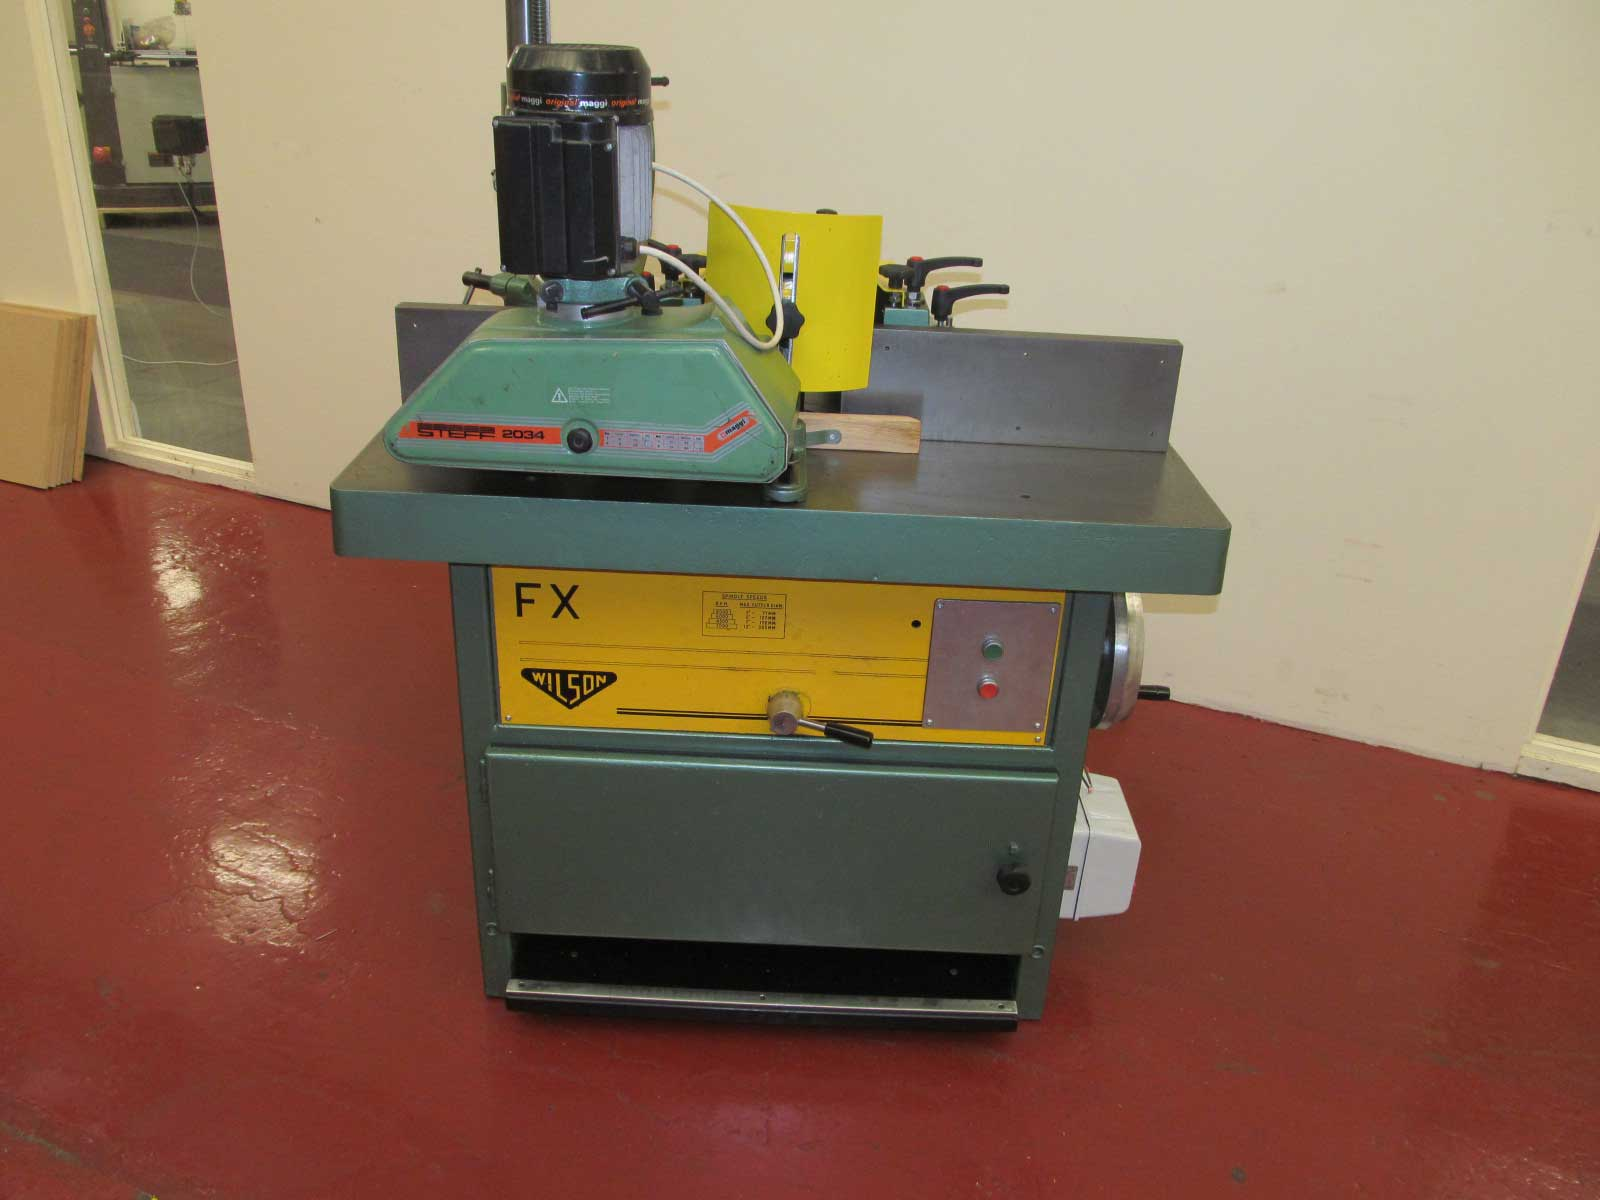 Wilson FX spindle with feed